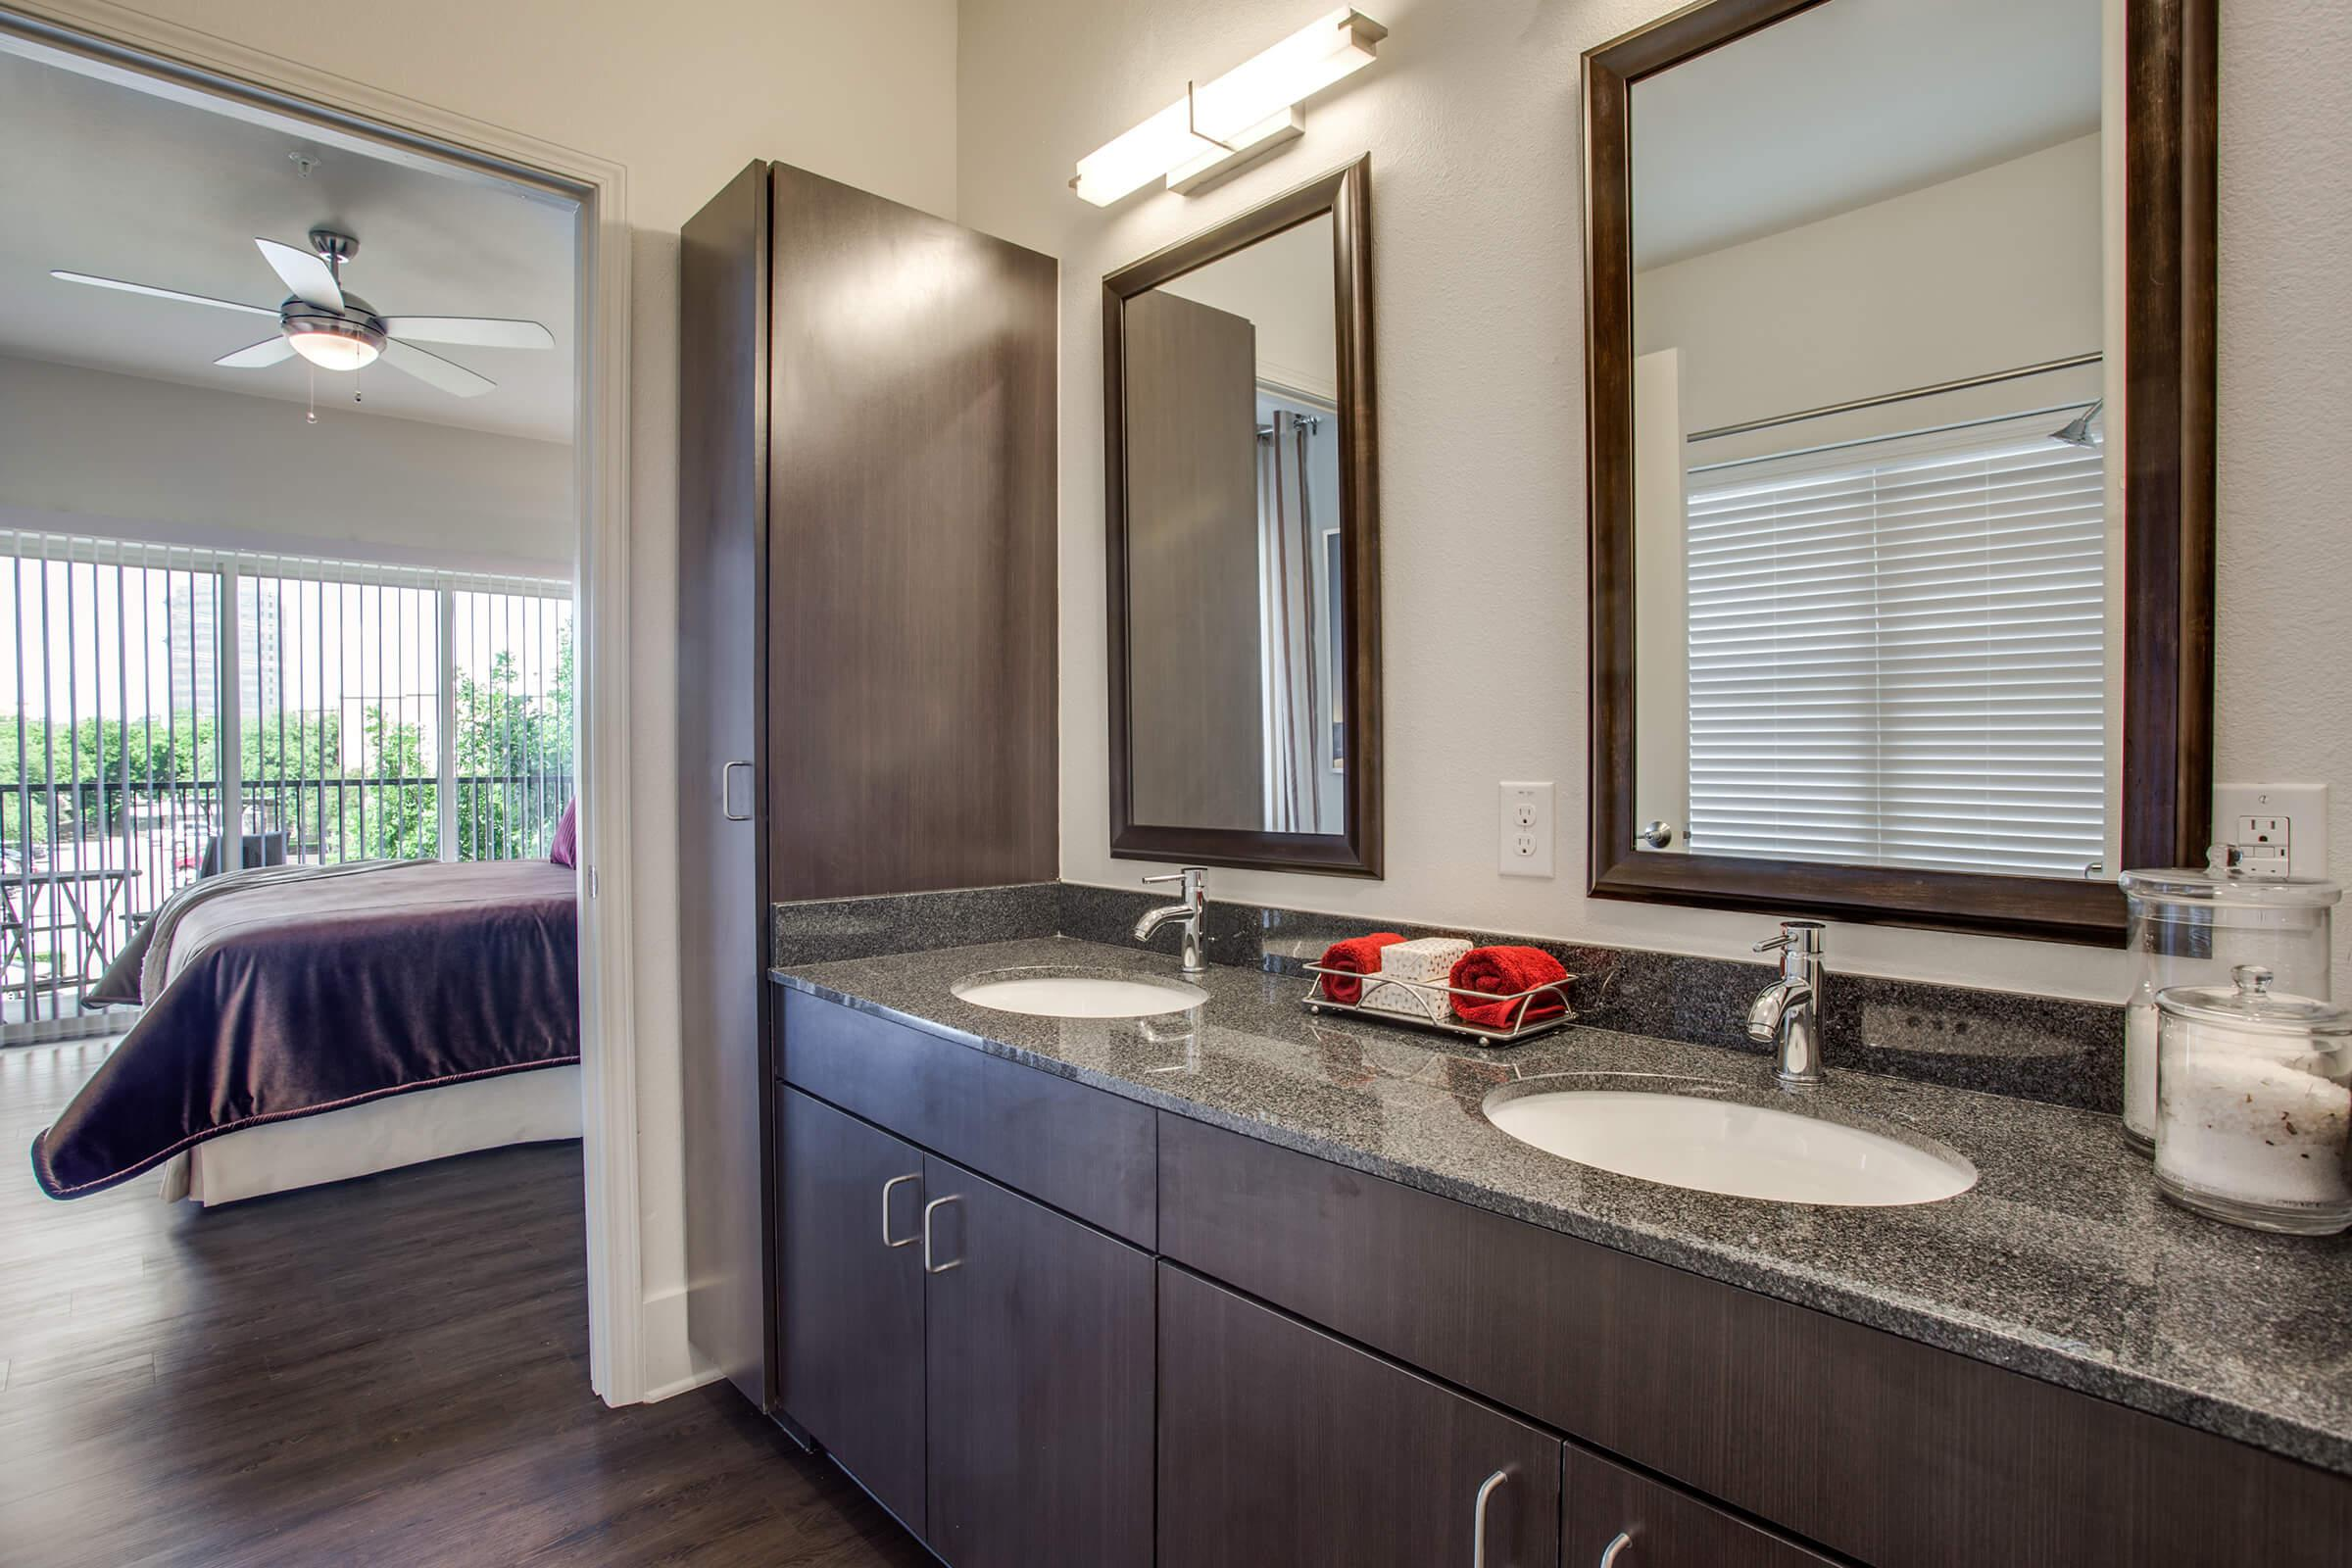 a kitchen with a sink mirror and window